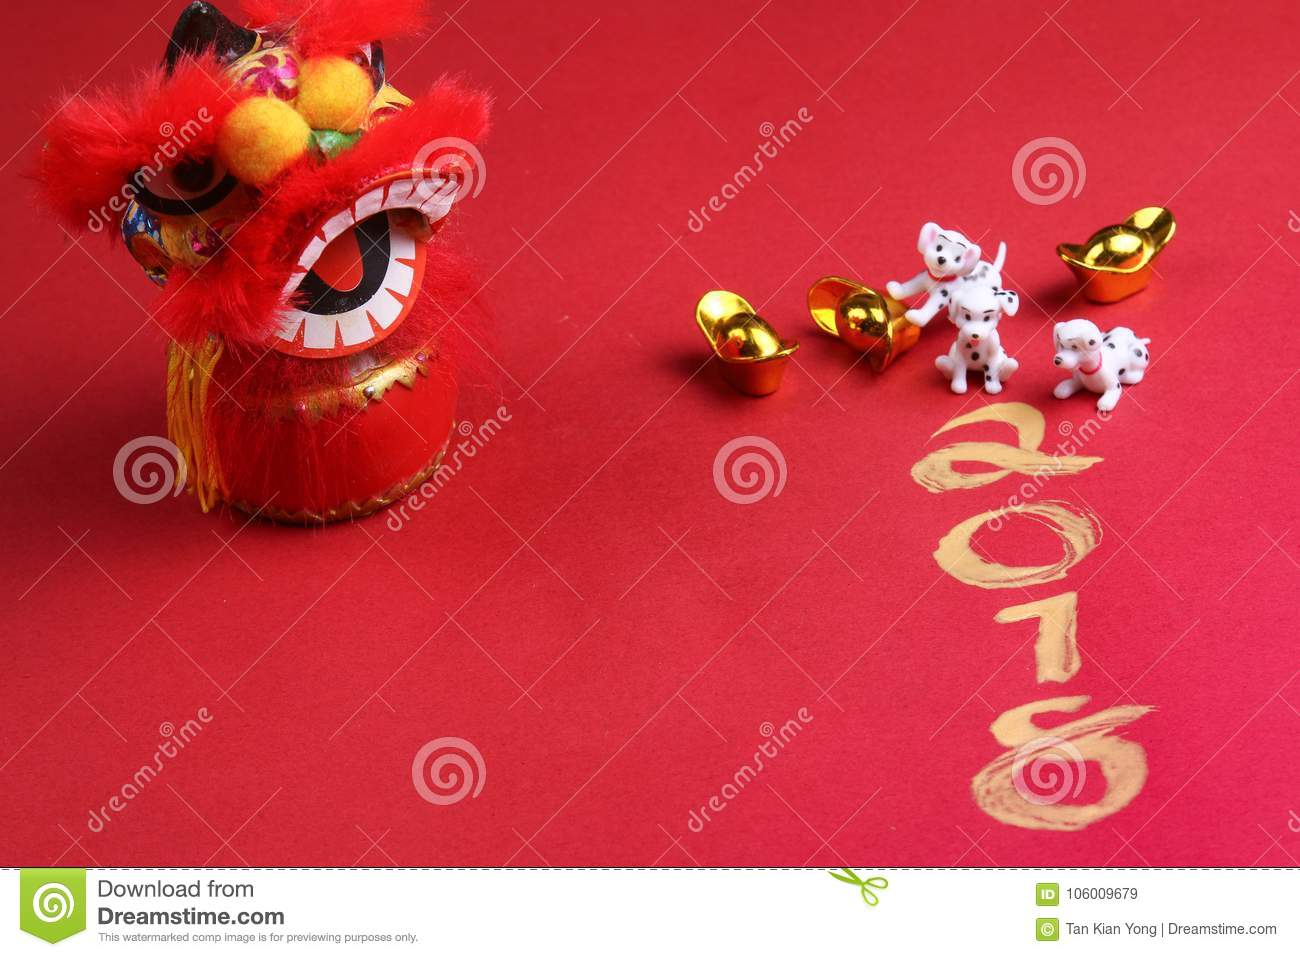 Miniature dogs with chinese new year decorations